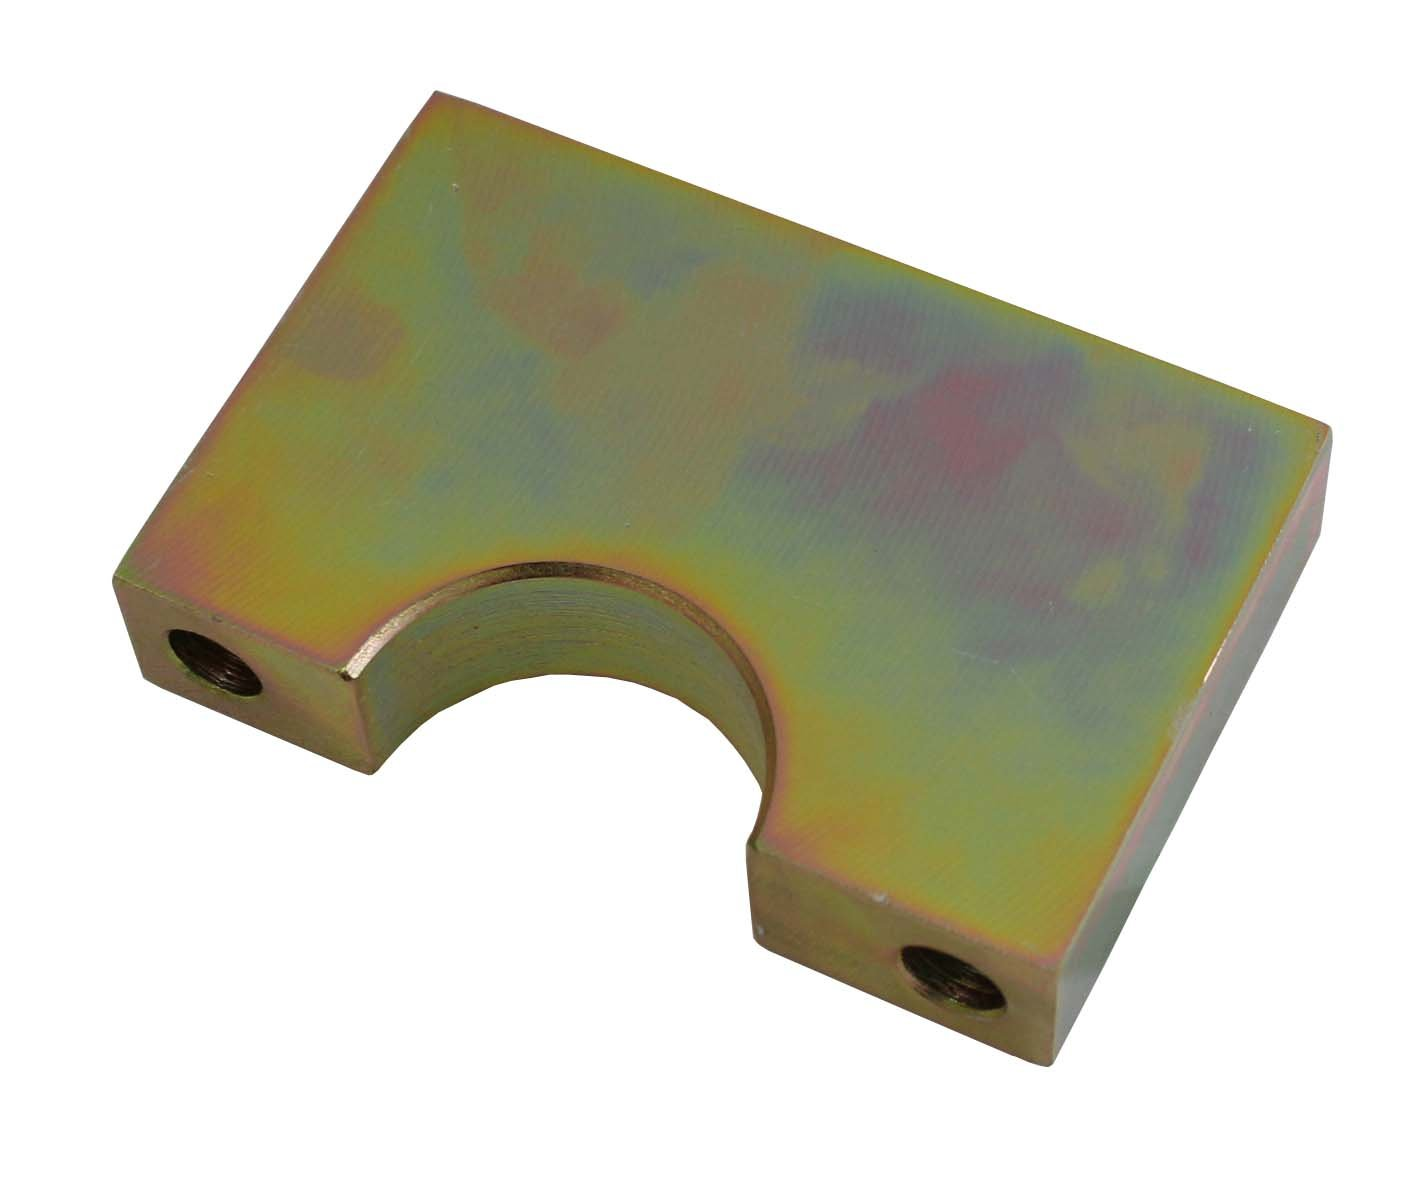 112-0540 Mercedes Benz Camshaft Hold Down Tool